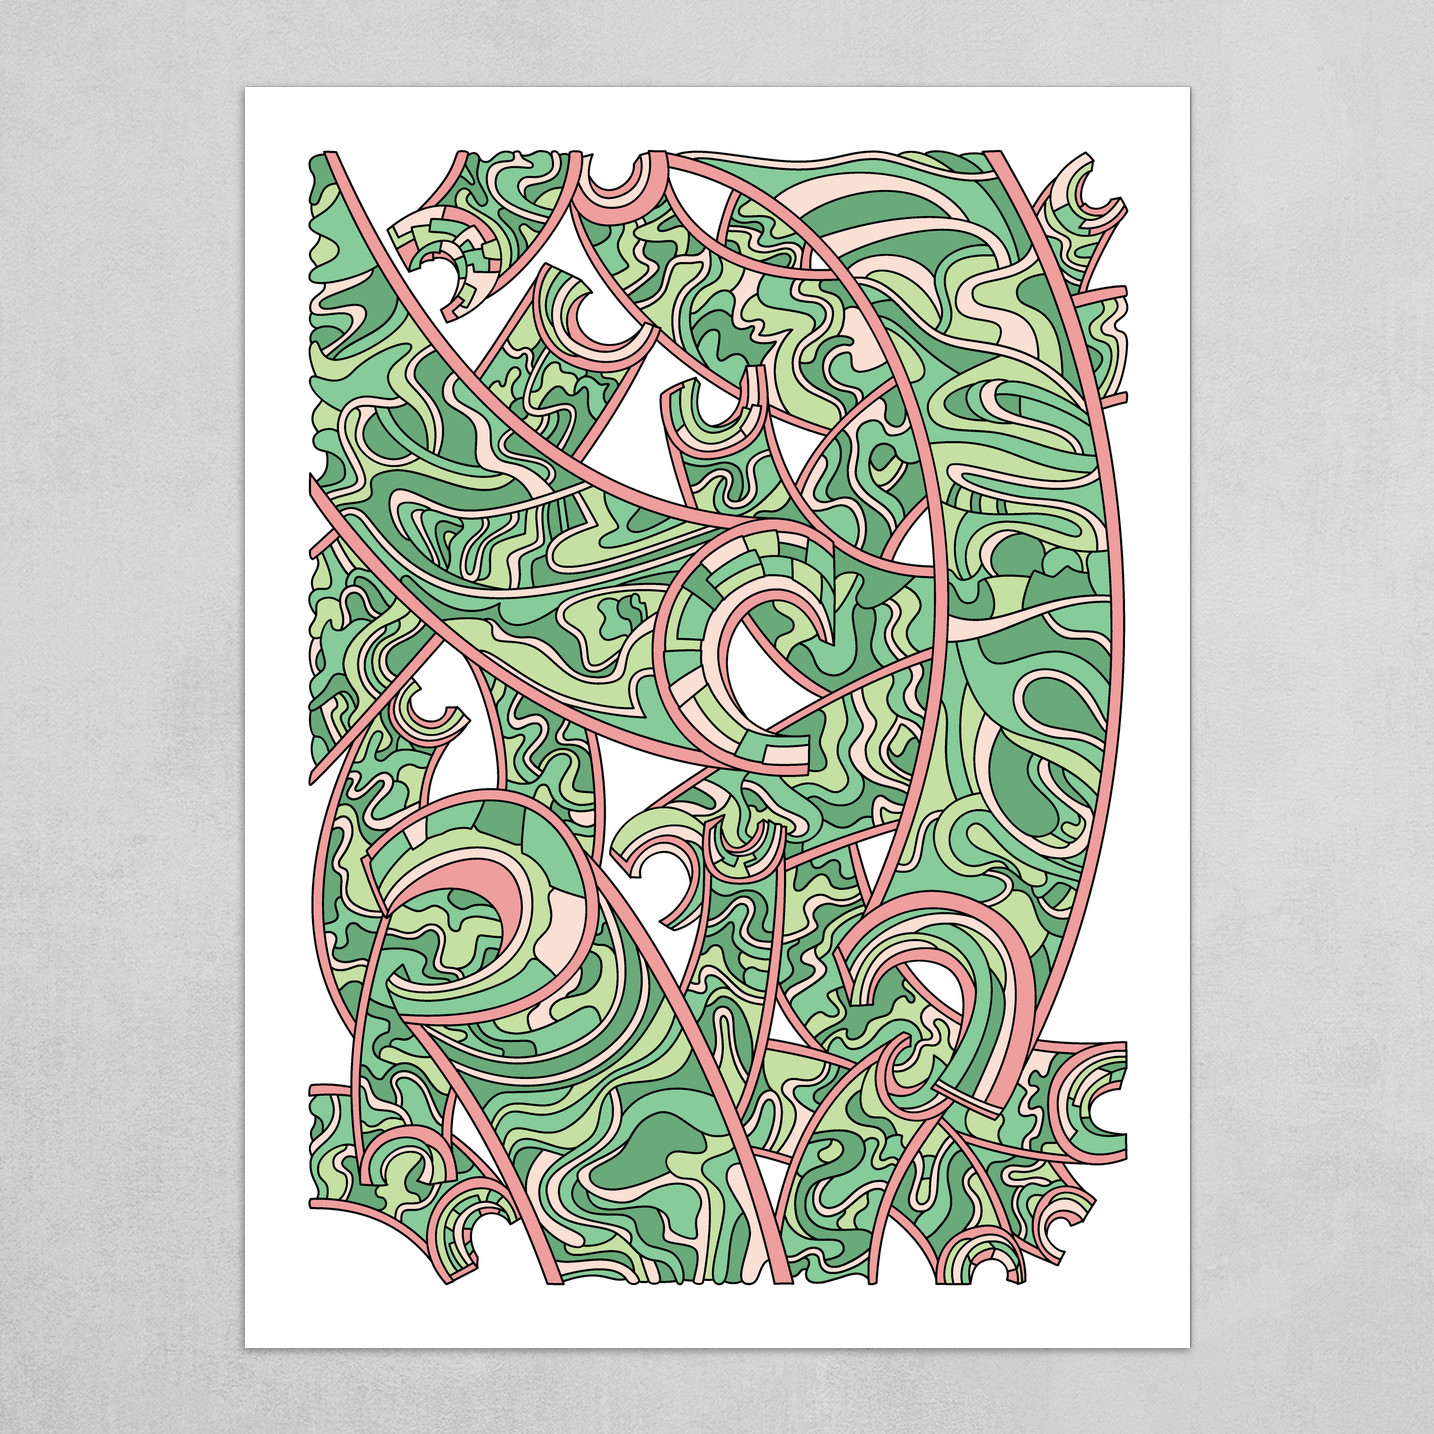 Wandering Abstract Line Art 32: Green